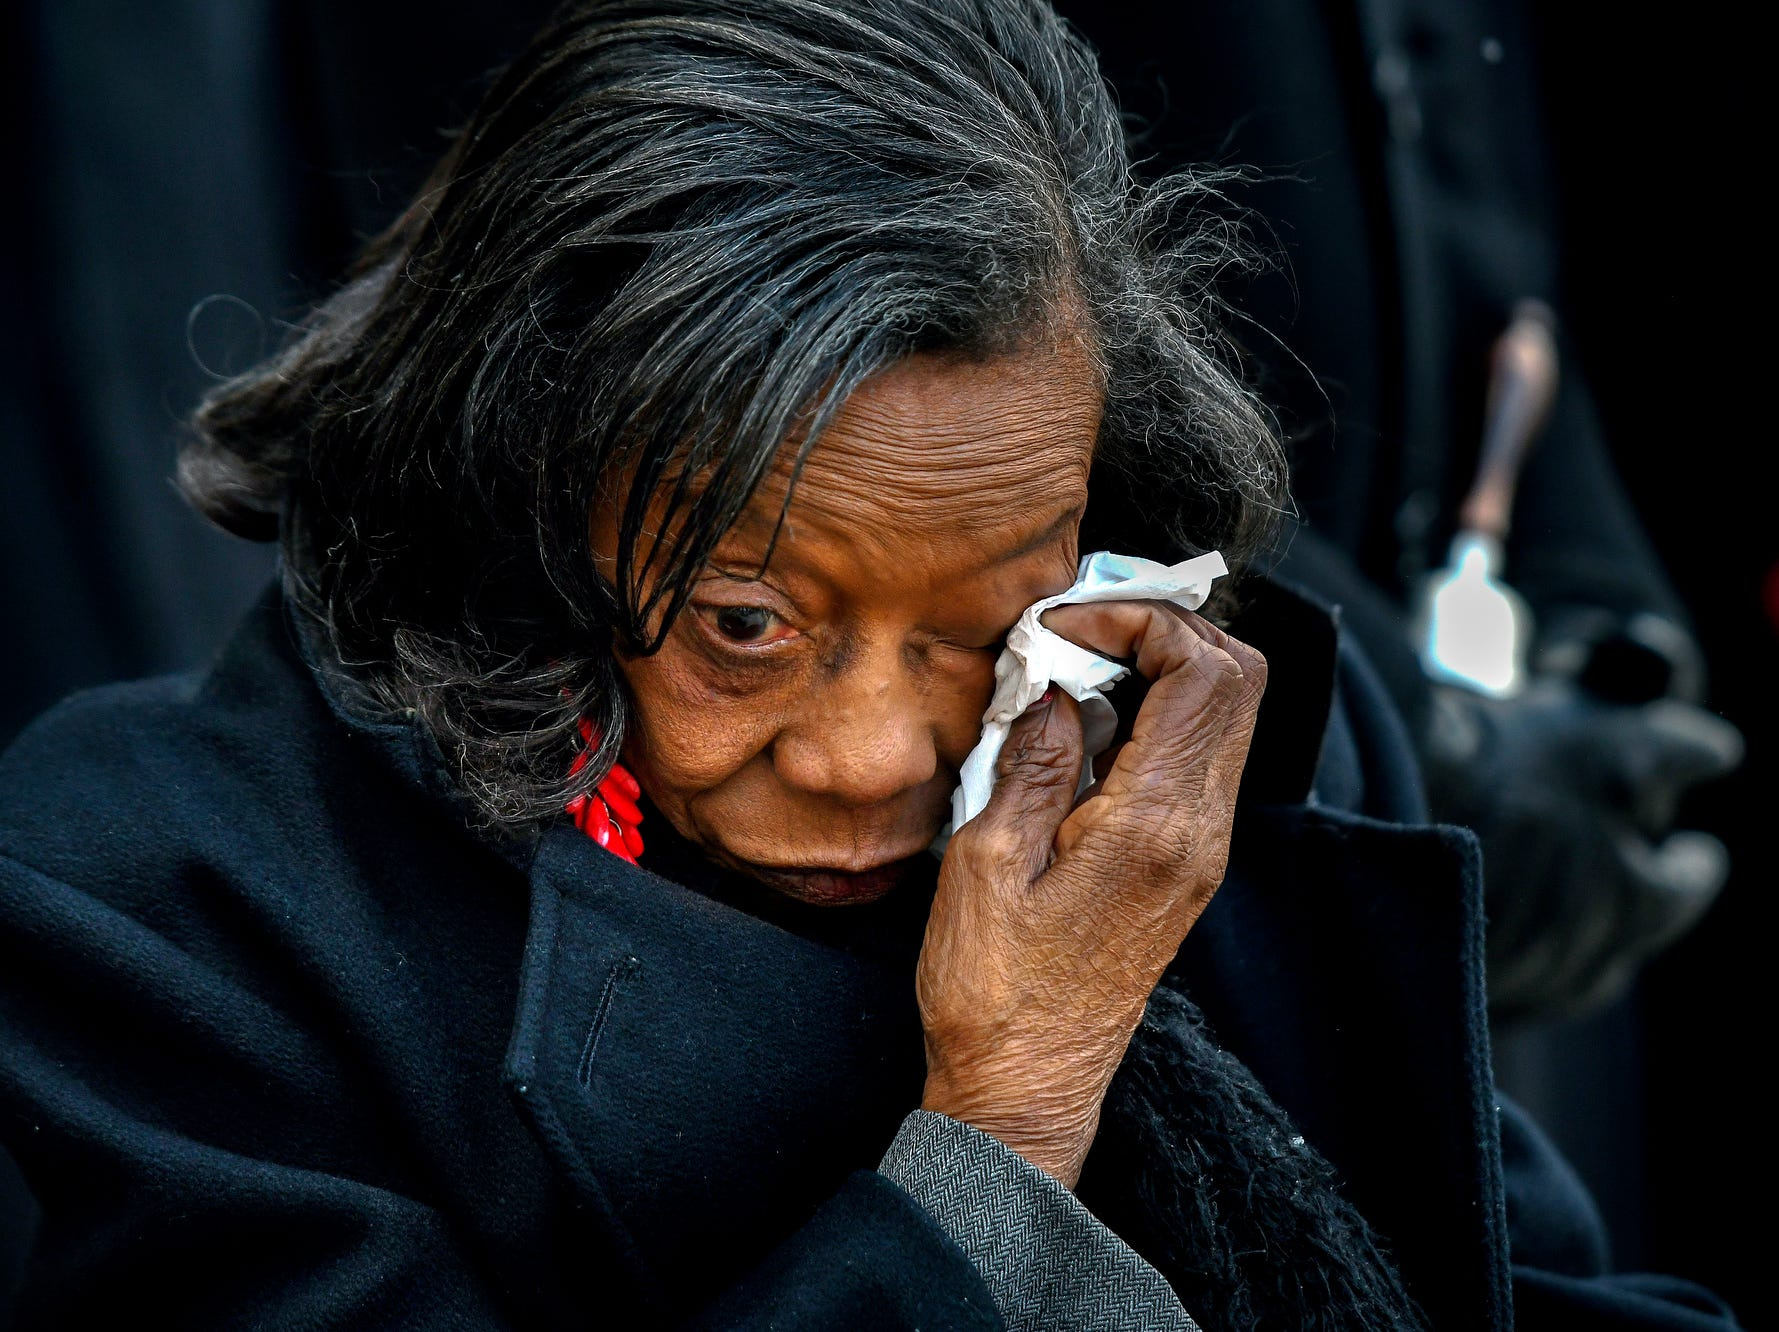 Mary Ellen Norwood Ford, an eye witness pictured in an iconic photo taken after Dr. Martin Luther King Jr.'s assassination, wipes tears from her eyes during the Ring a Bell for Freedom event on Wednesday, April 4, 2018, at the Michigan State Capitol in Lansing. Ford attended the event as the honored guest. The event, organized by the The Greater Lansing Area Dr. Martin Luther King Jr. Holiday Commission, commemorated the civil rights leader who was assassinated 50 years ago on this day.